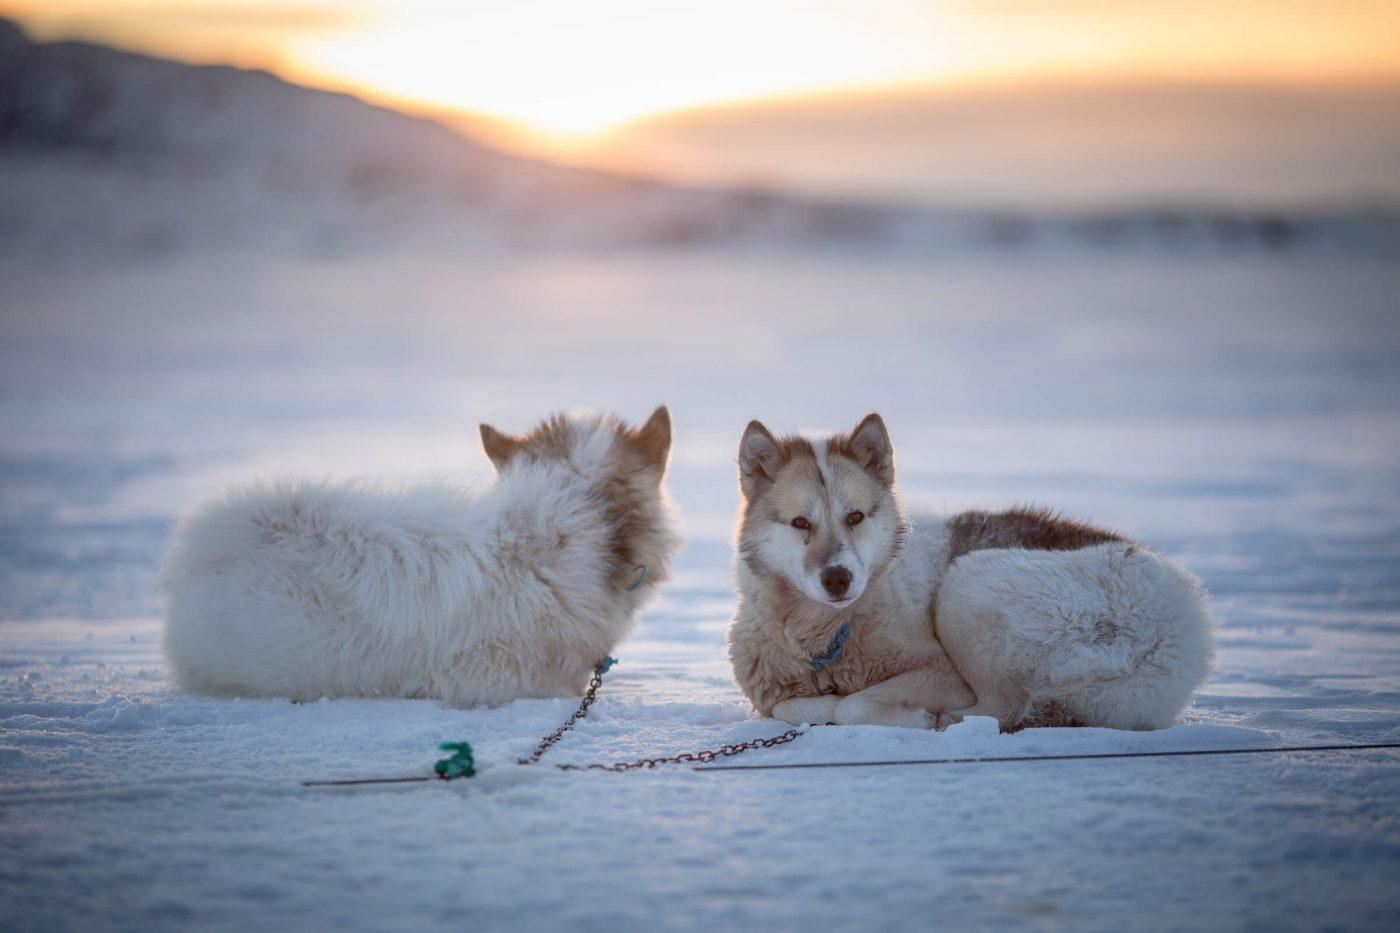 Sled dogs in the sunset near Oqaatsut in Greenland. Photo by Mads Pihl.